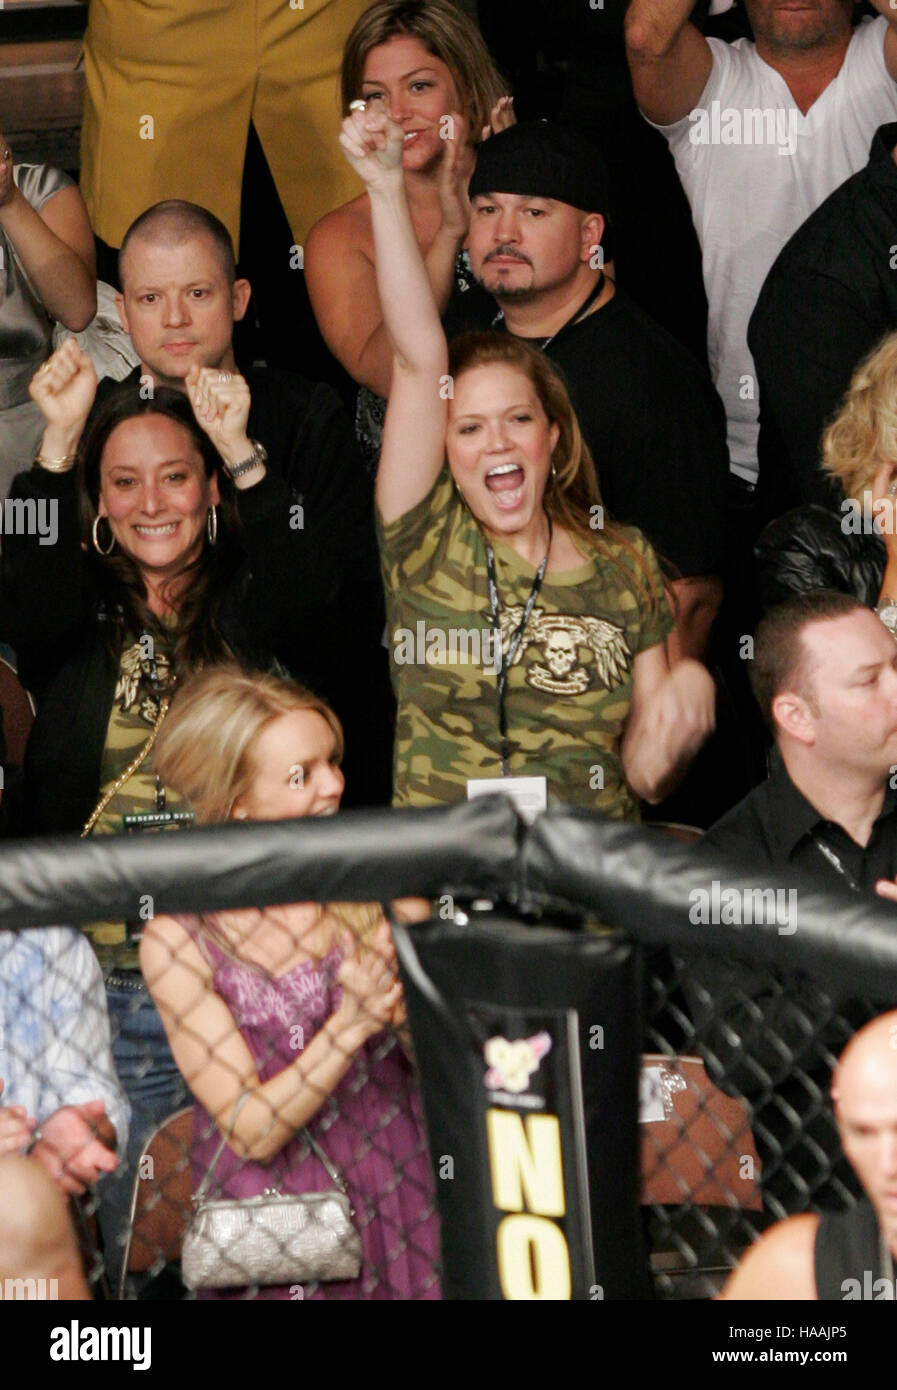 Mandy Moore During Ufc 86 Stoc...